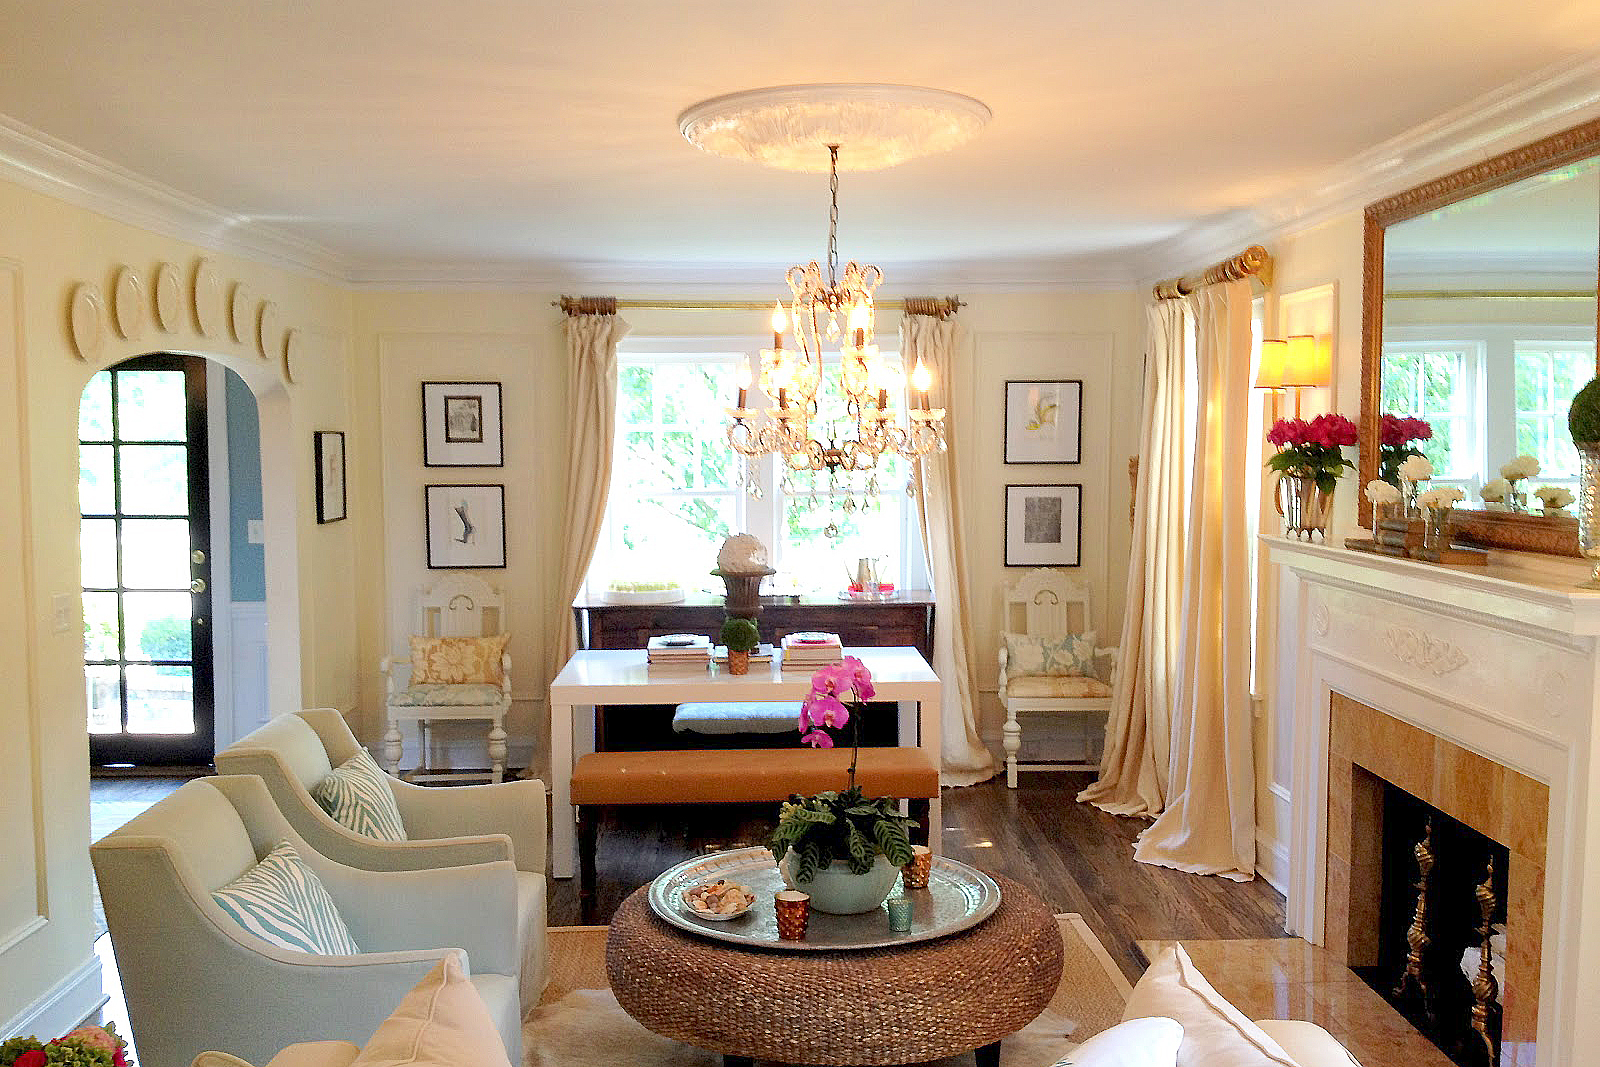 Cheap Remodeling Ideas That Add Elegance   Remodeling on a Budget